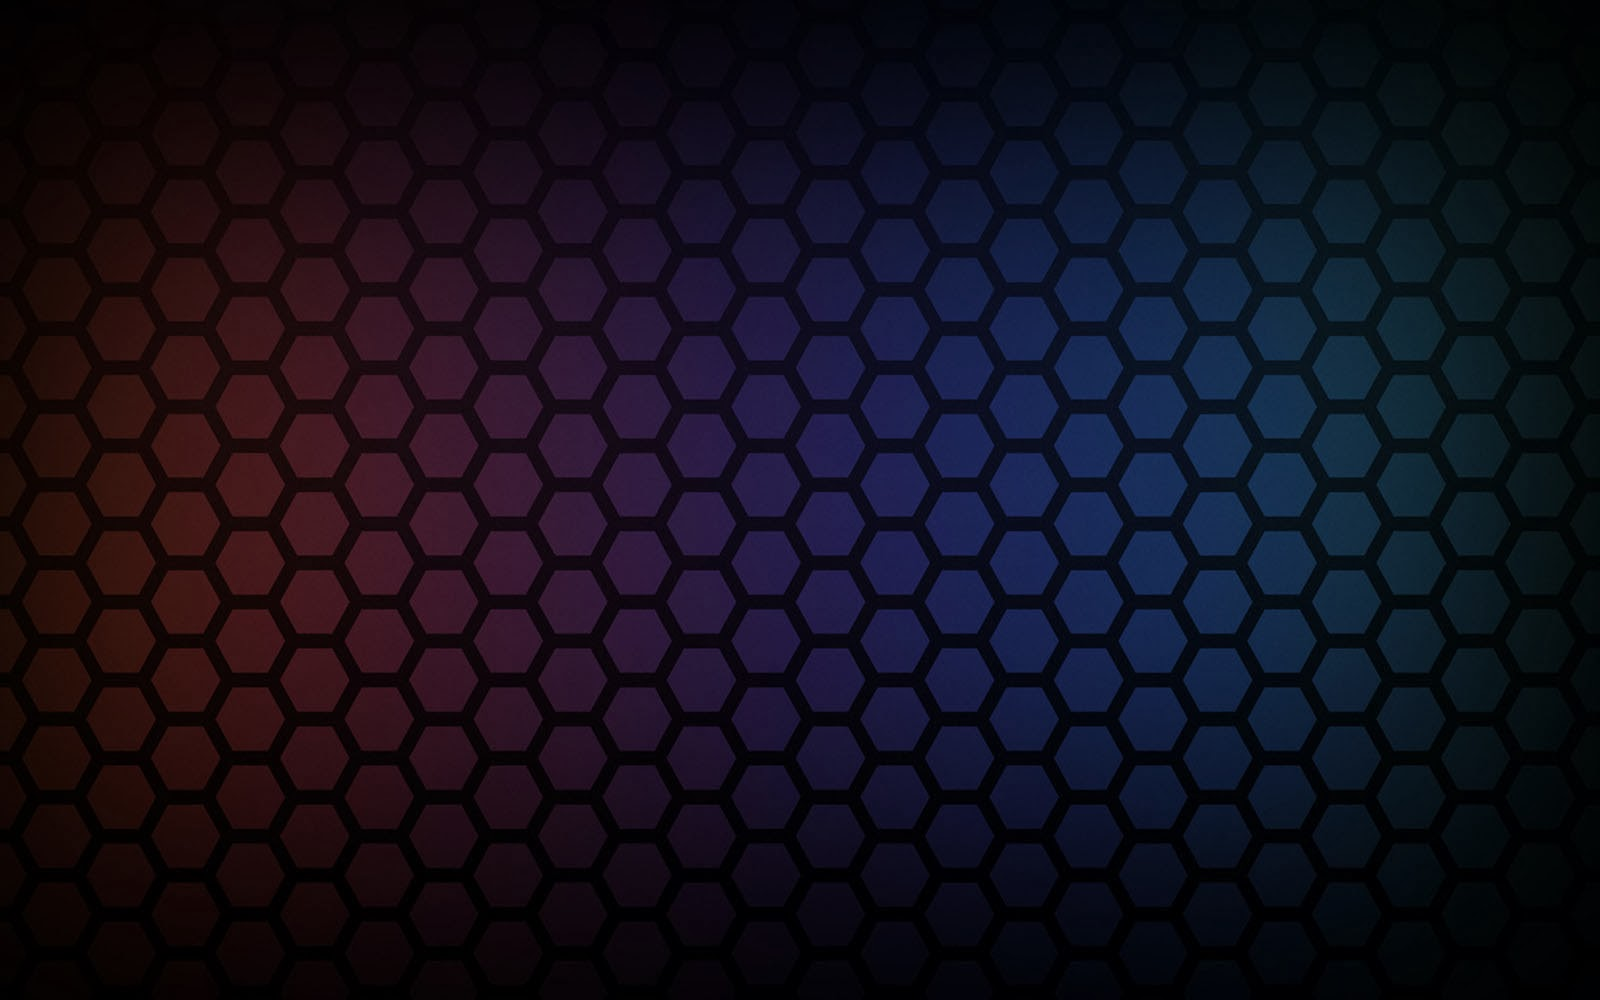 Wallpapers 3d Honeycomb Wallpapers